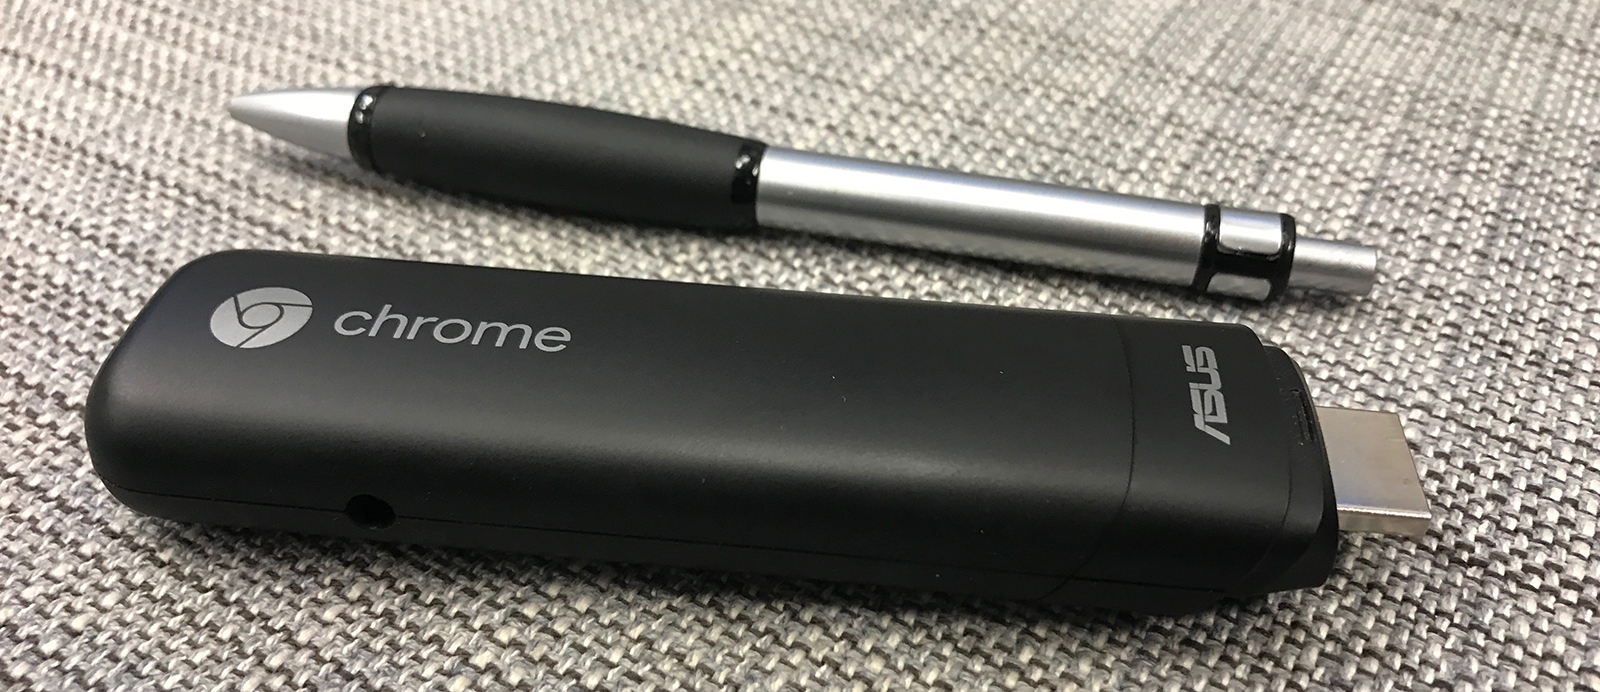 PinToMind - Asus Chromebit with app for PinToMind